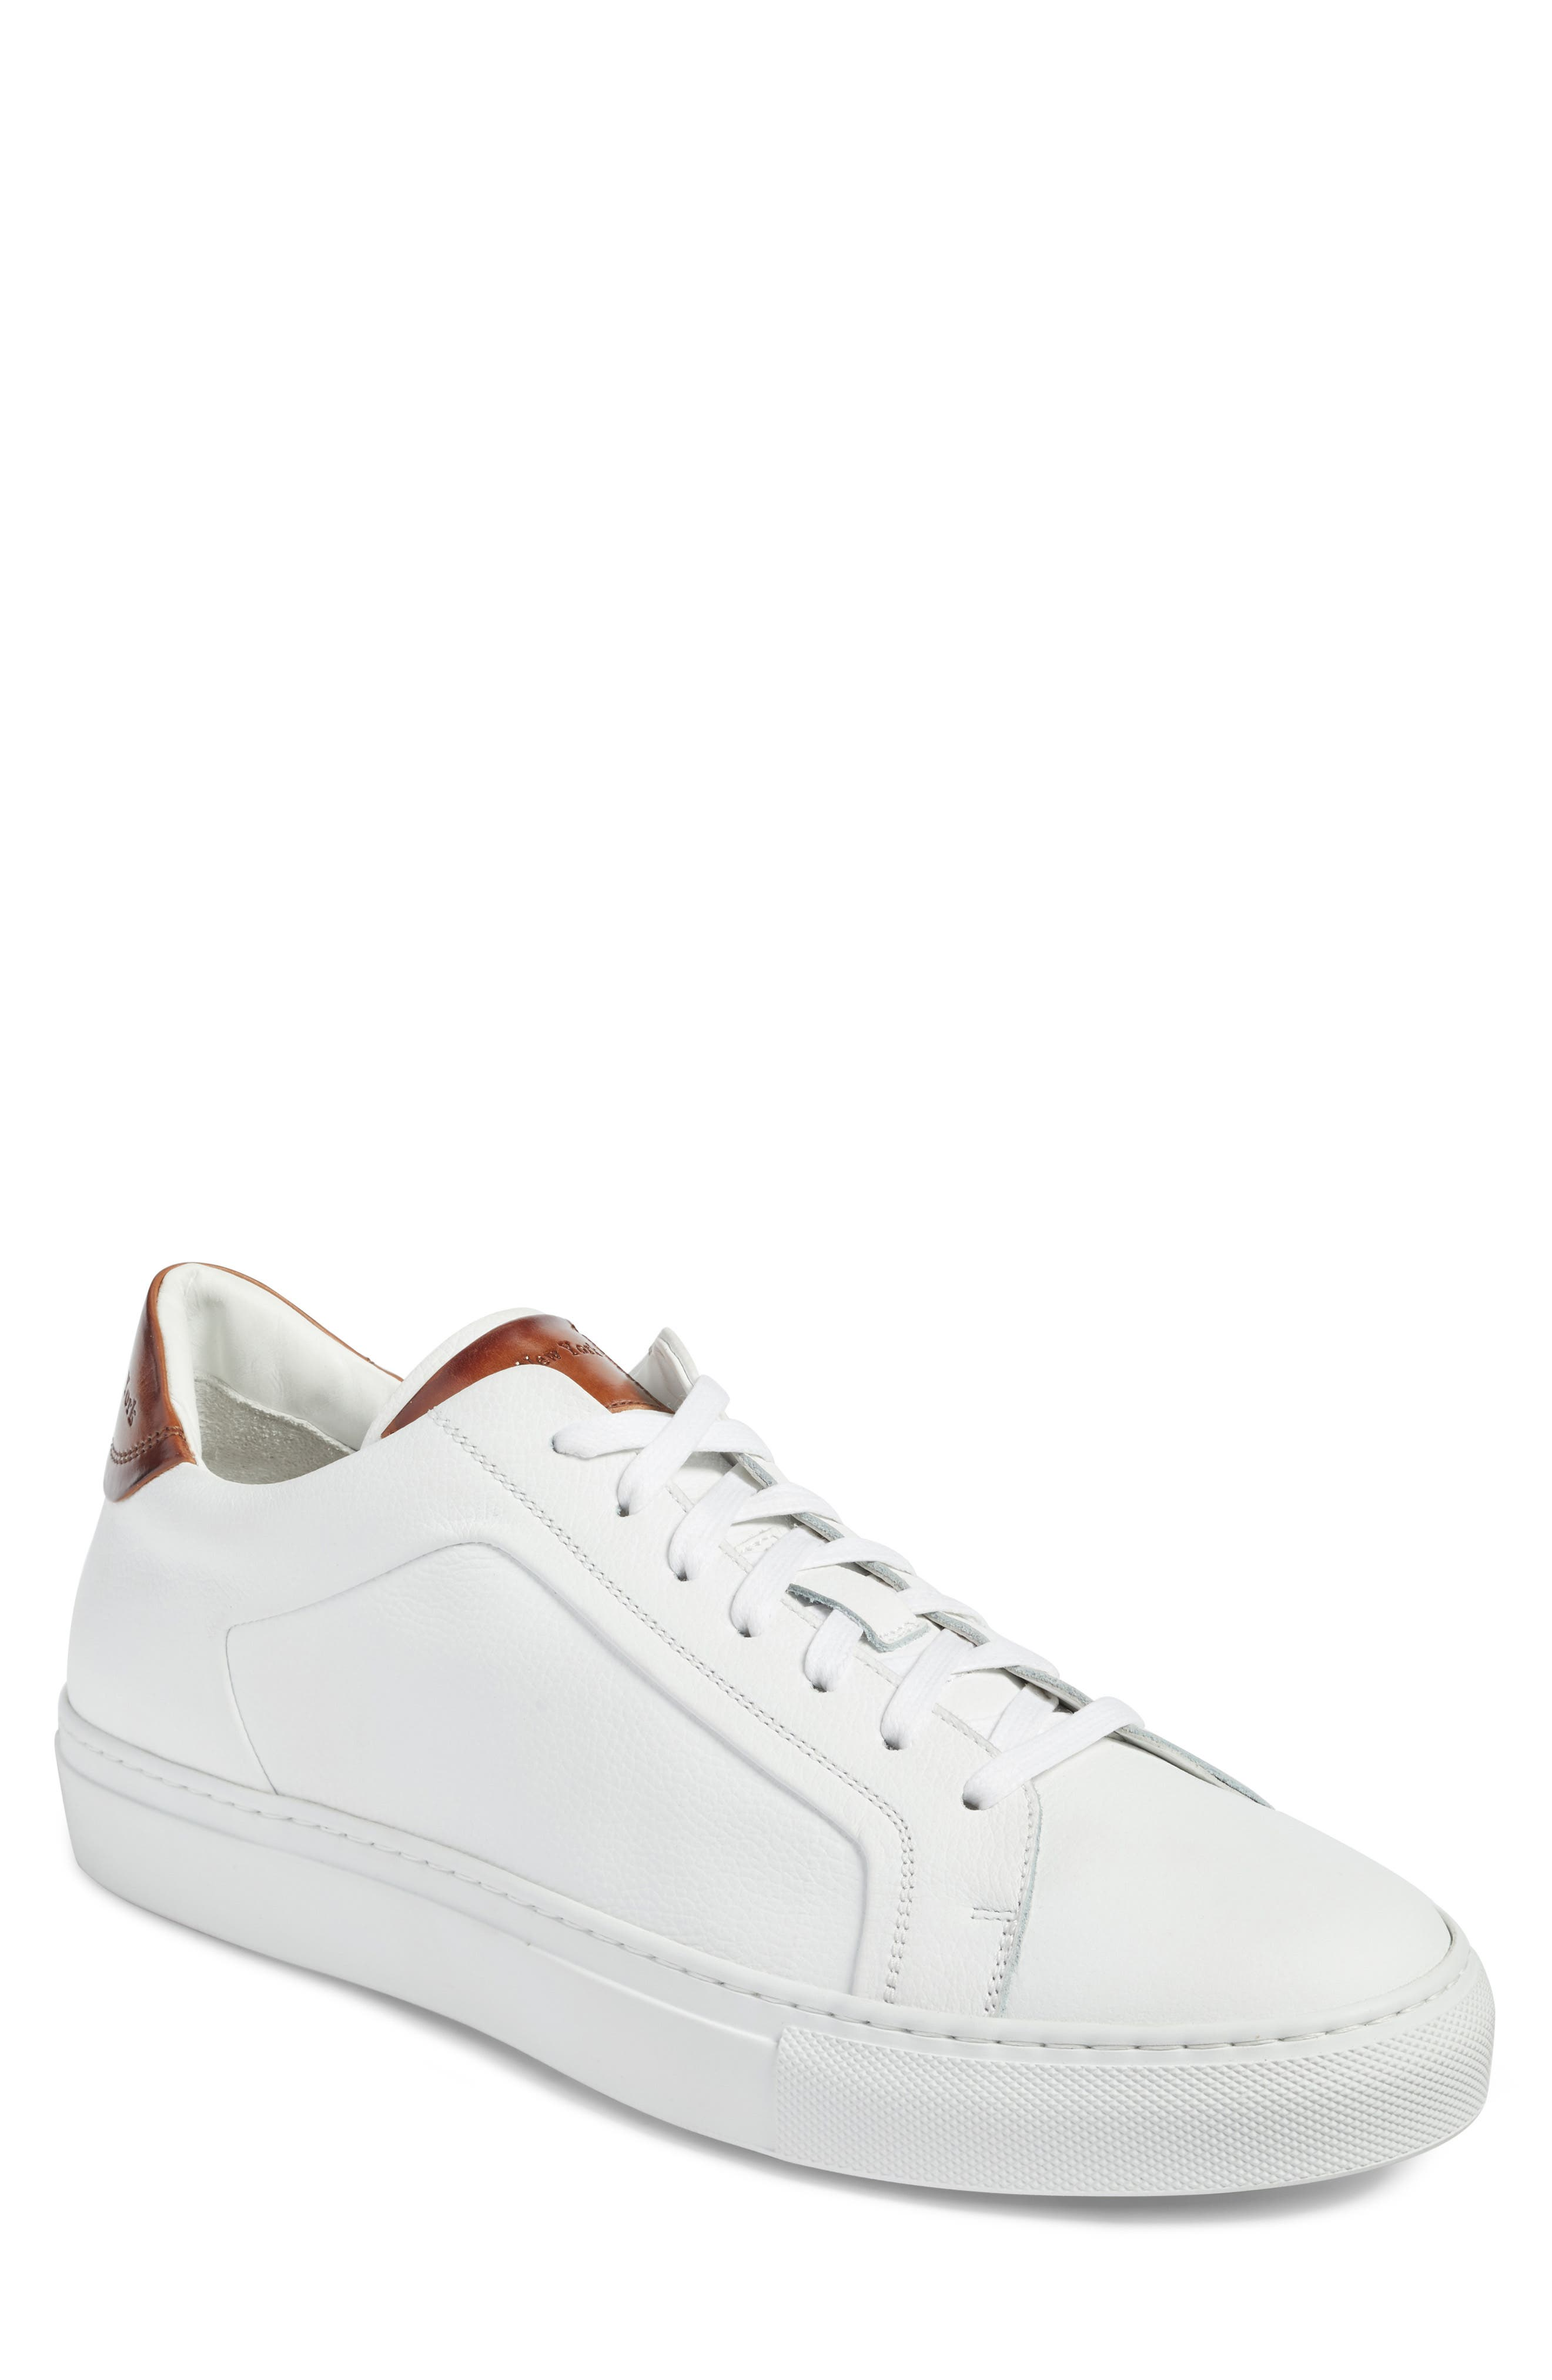 To Boot New York Carlin Sneaker, White